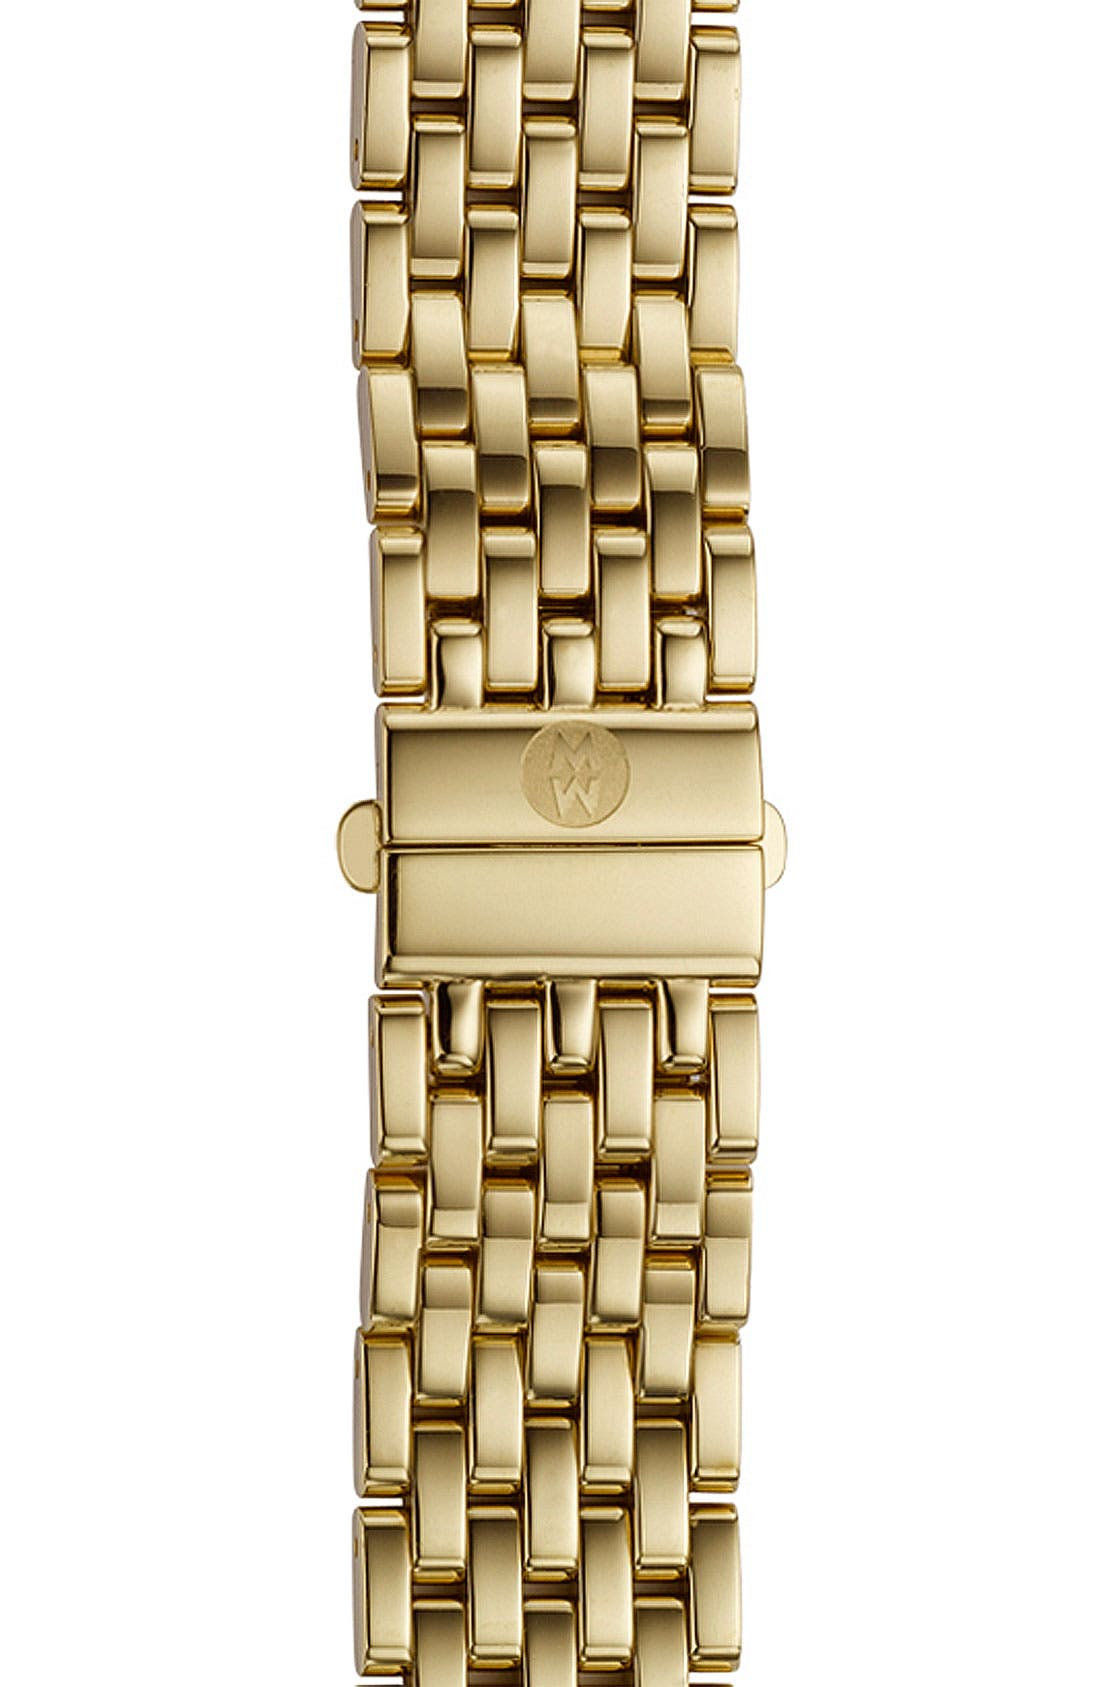 Alternate Image 1 Selected - MICHELE Deco 16 16mm Gold Plated Bracelet Watchband